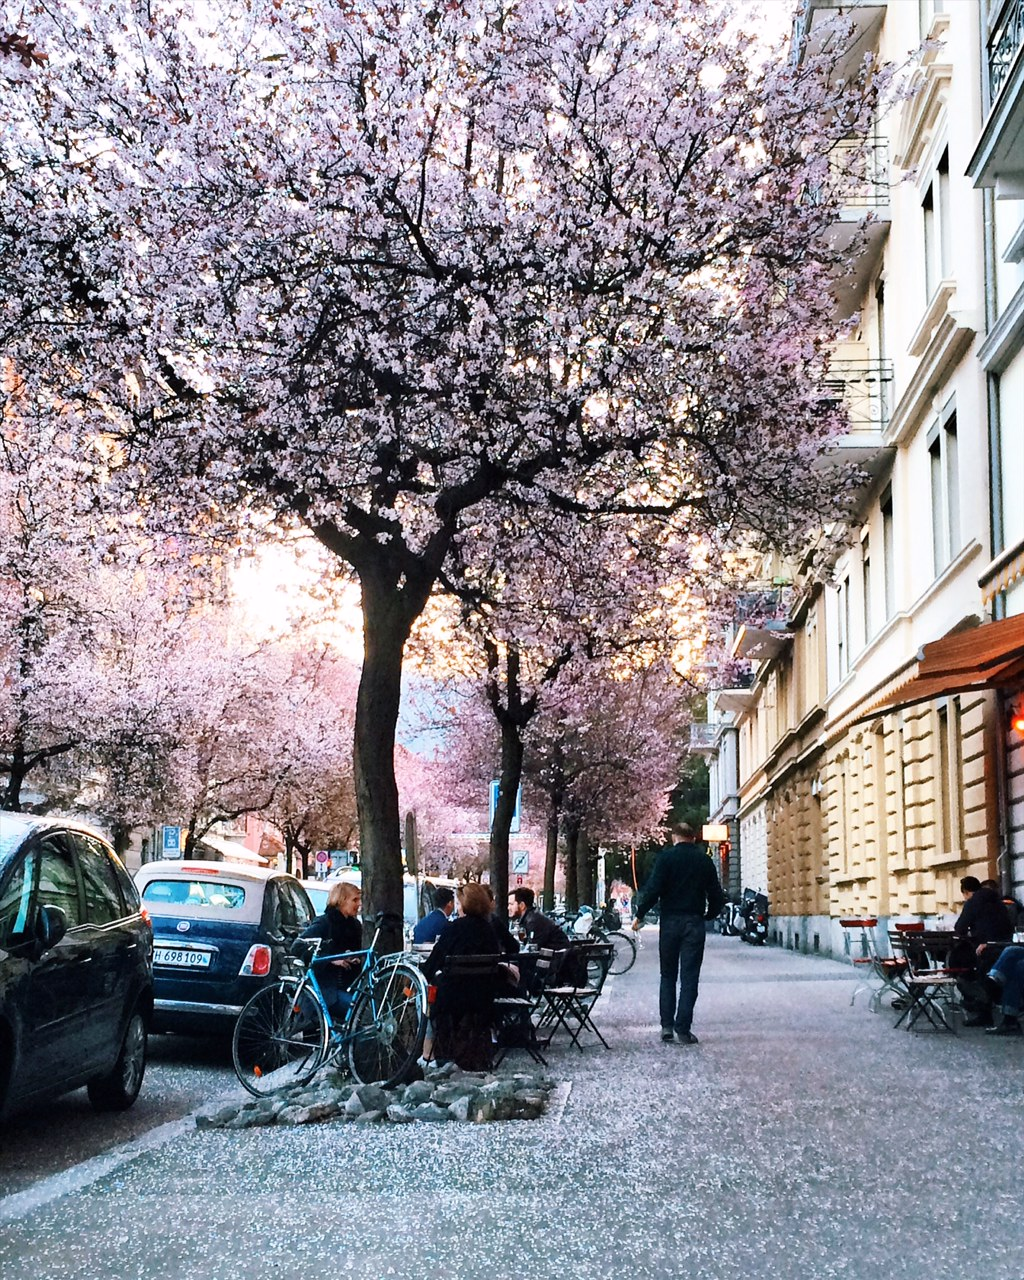 Spring cherry blossom blooming in Zurich